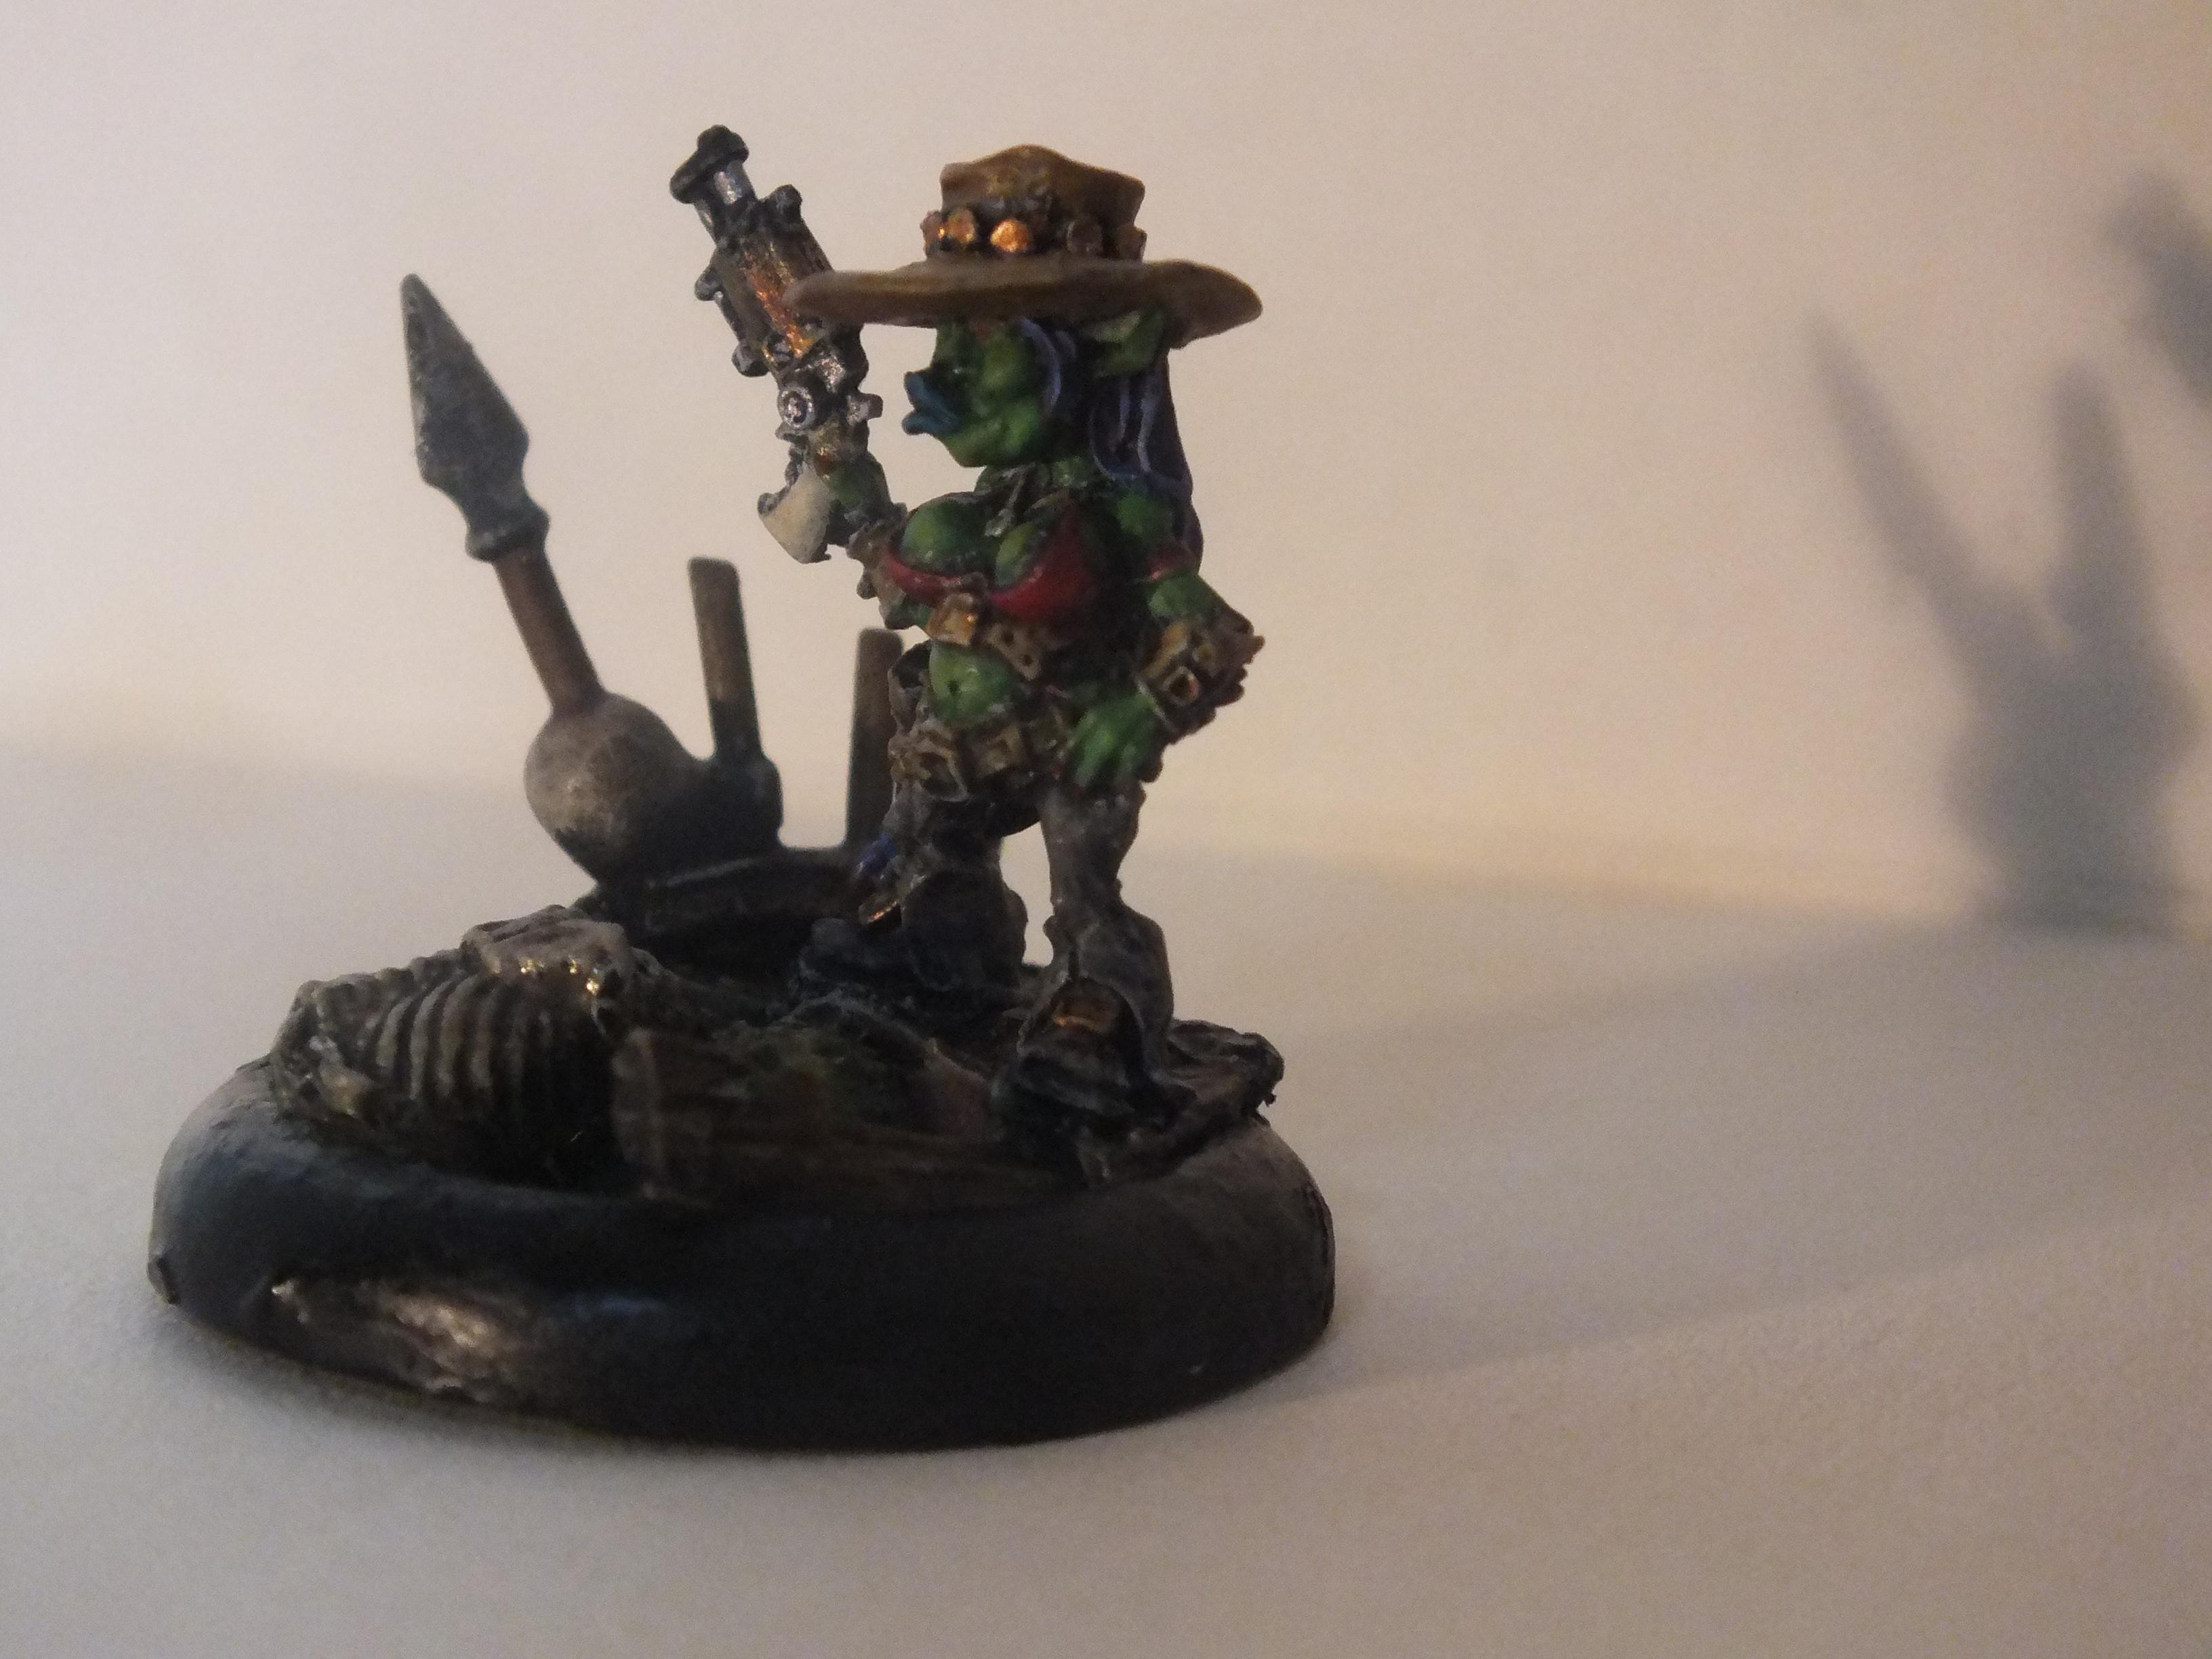 Gremlin, Malifaux, Orks, Outcasts